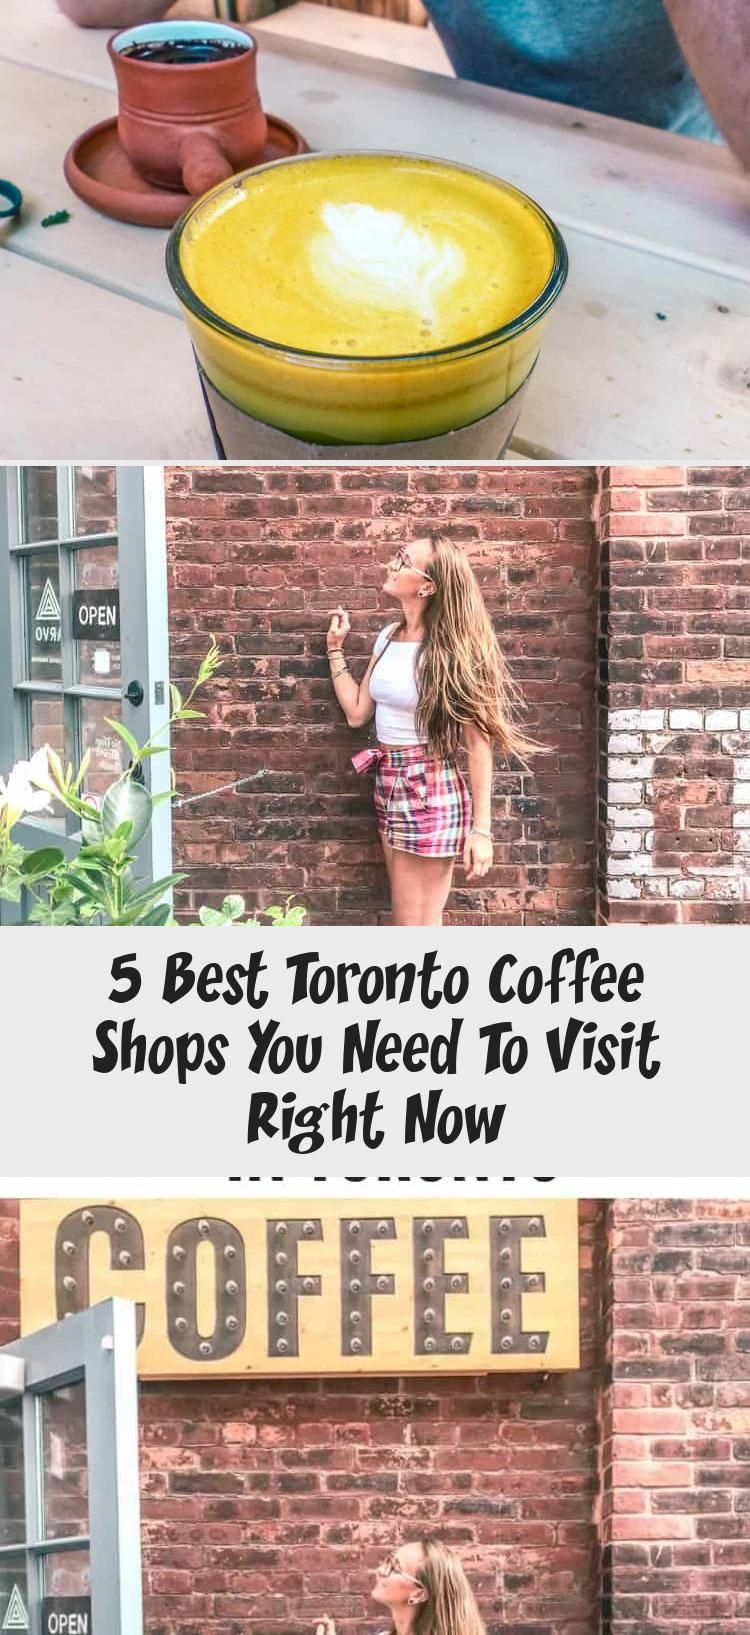 5 best toronto coffee shops you need to visit right now